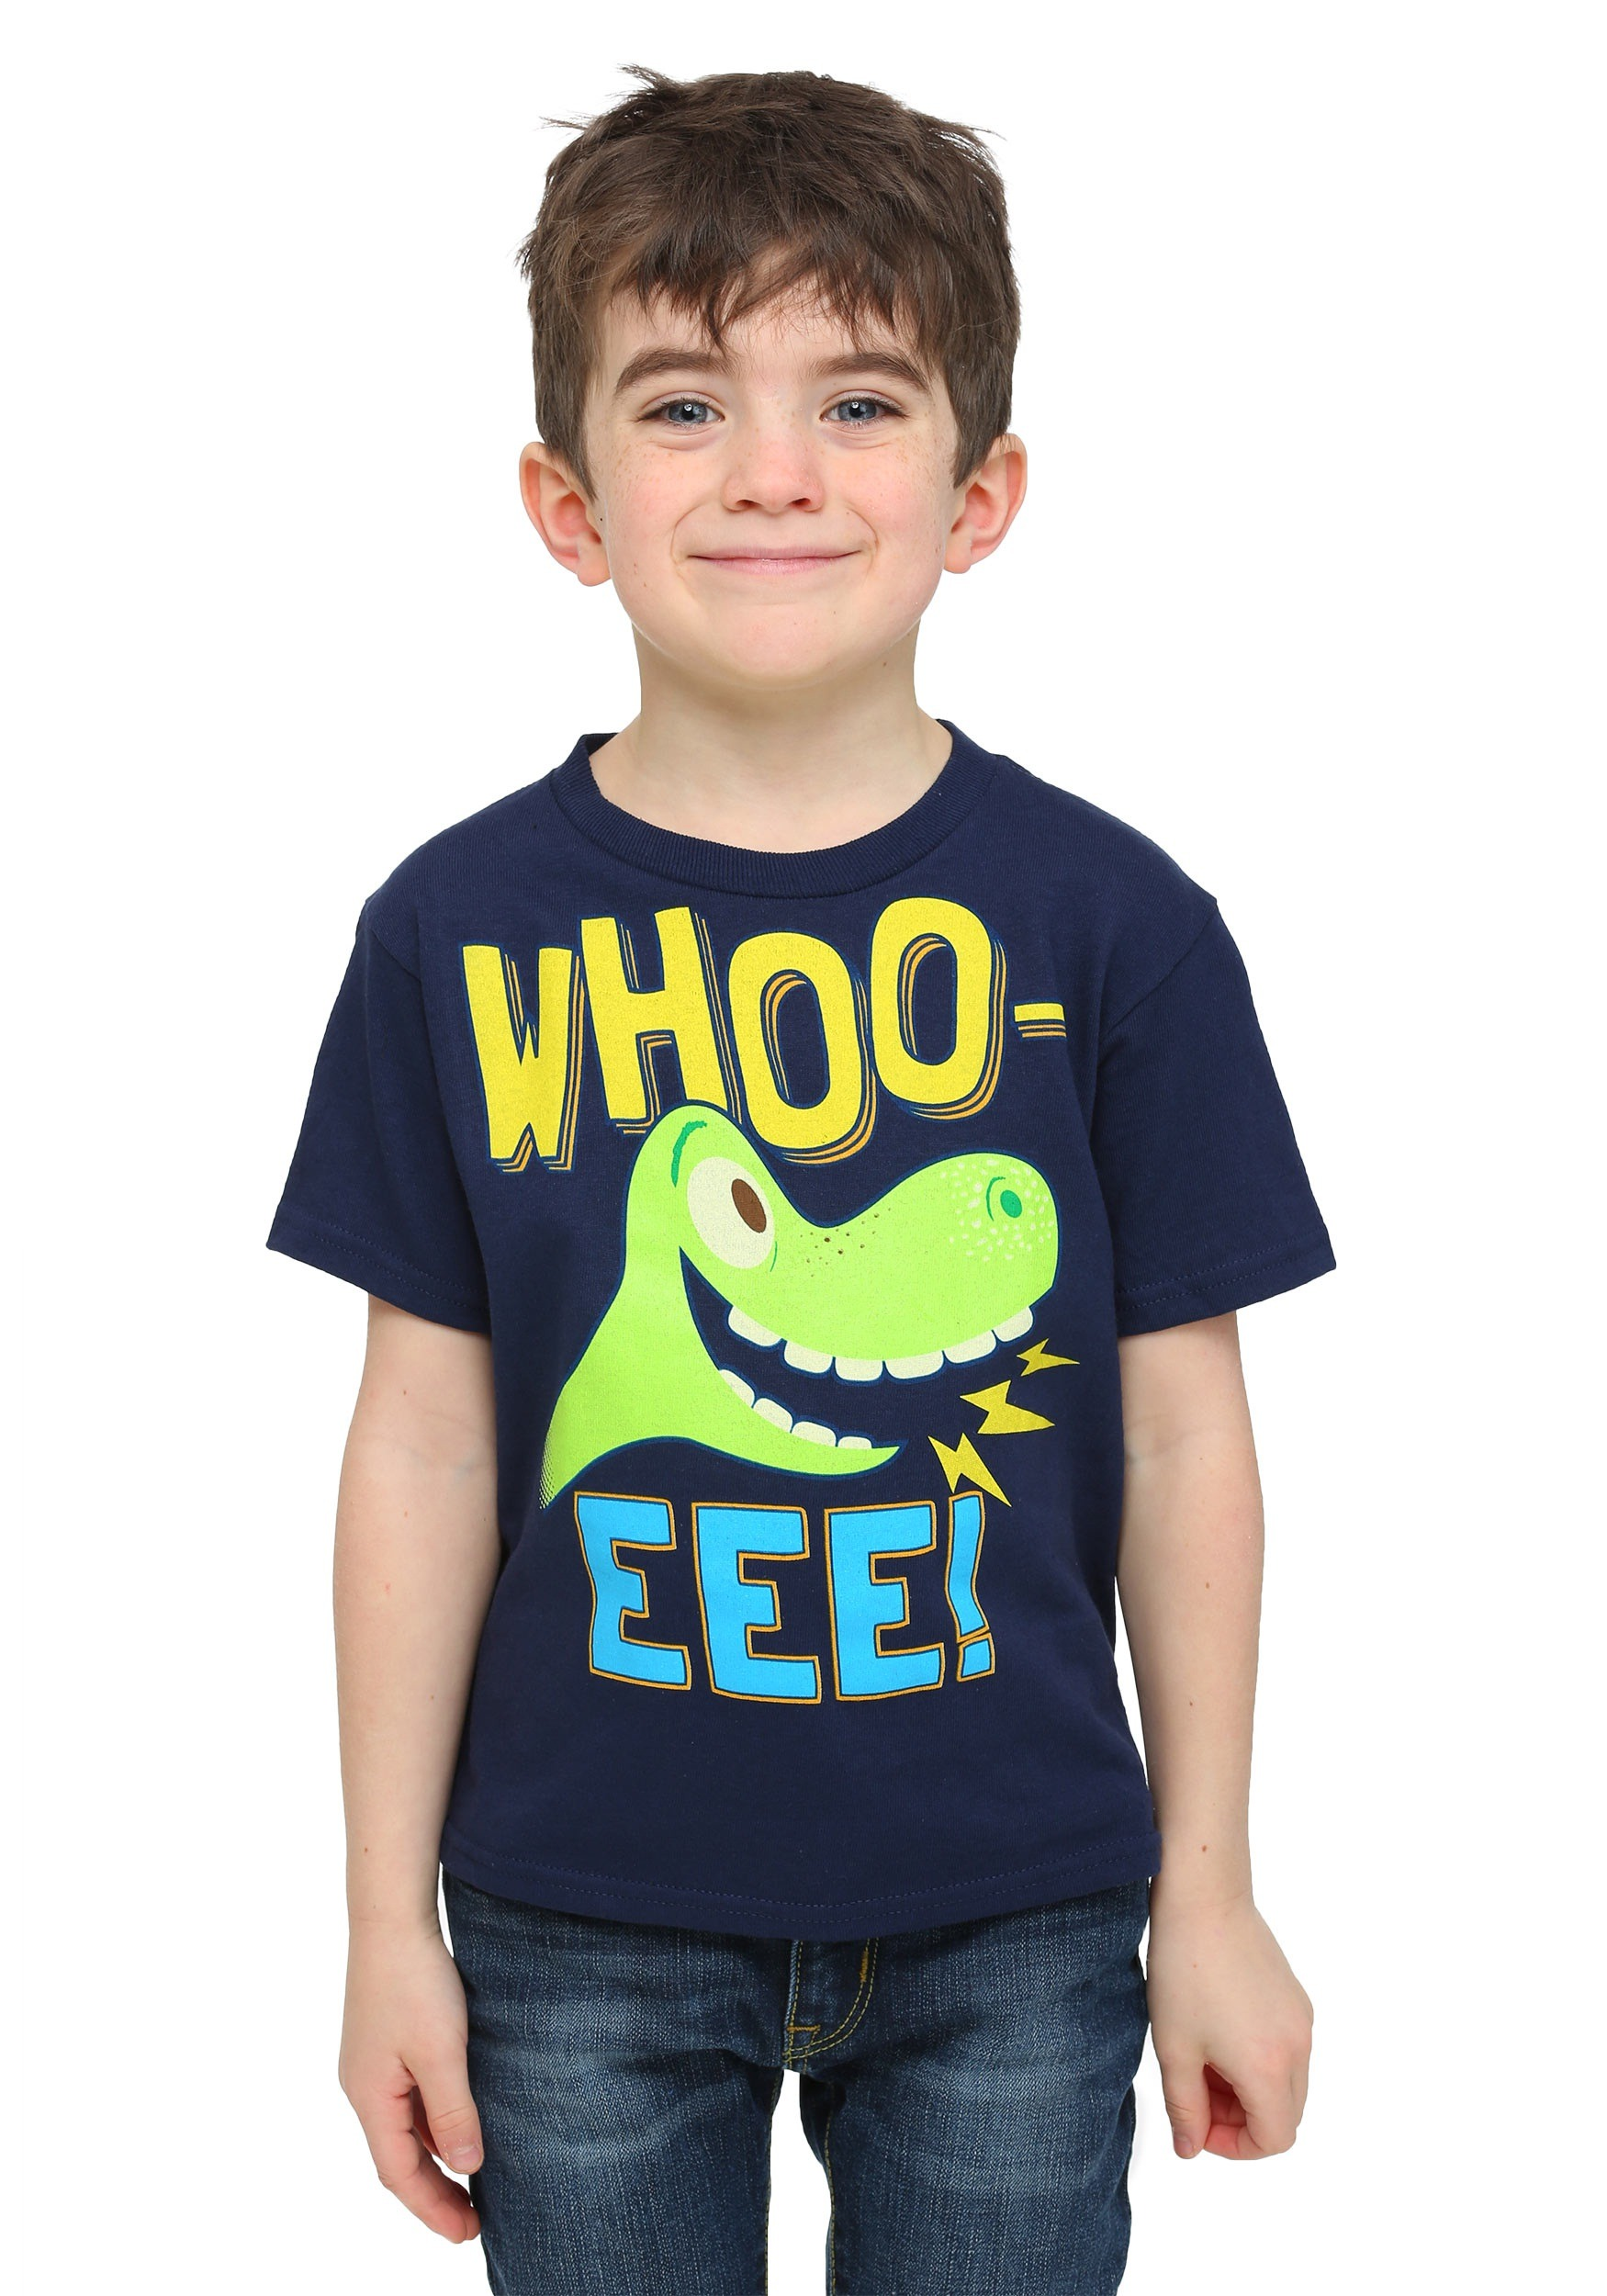 The Good Dinosaur Gifts